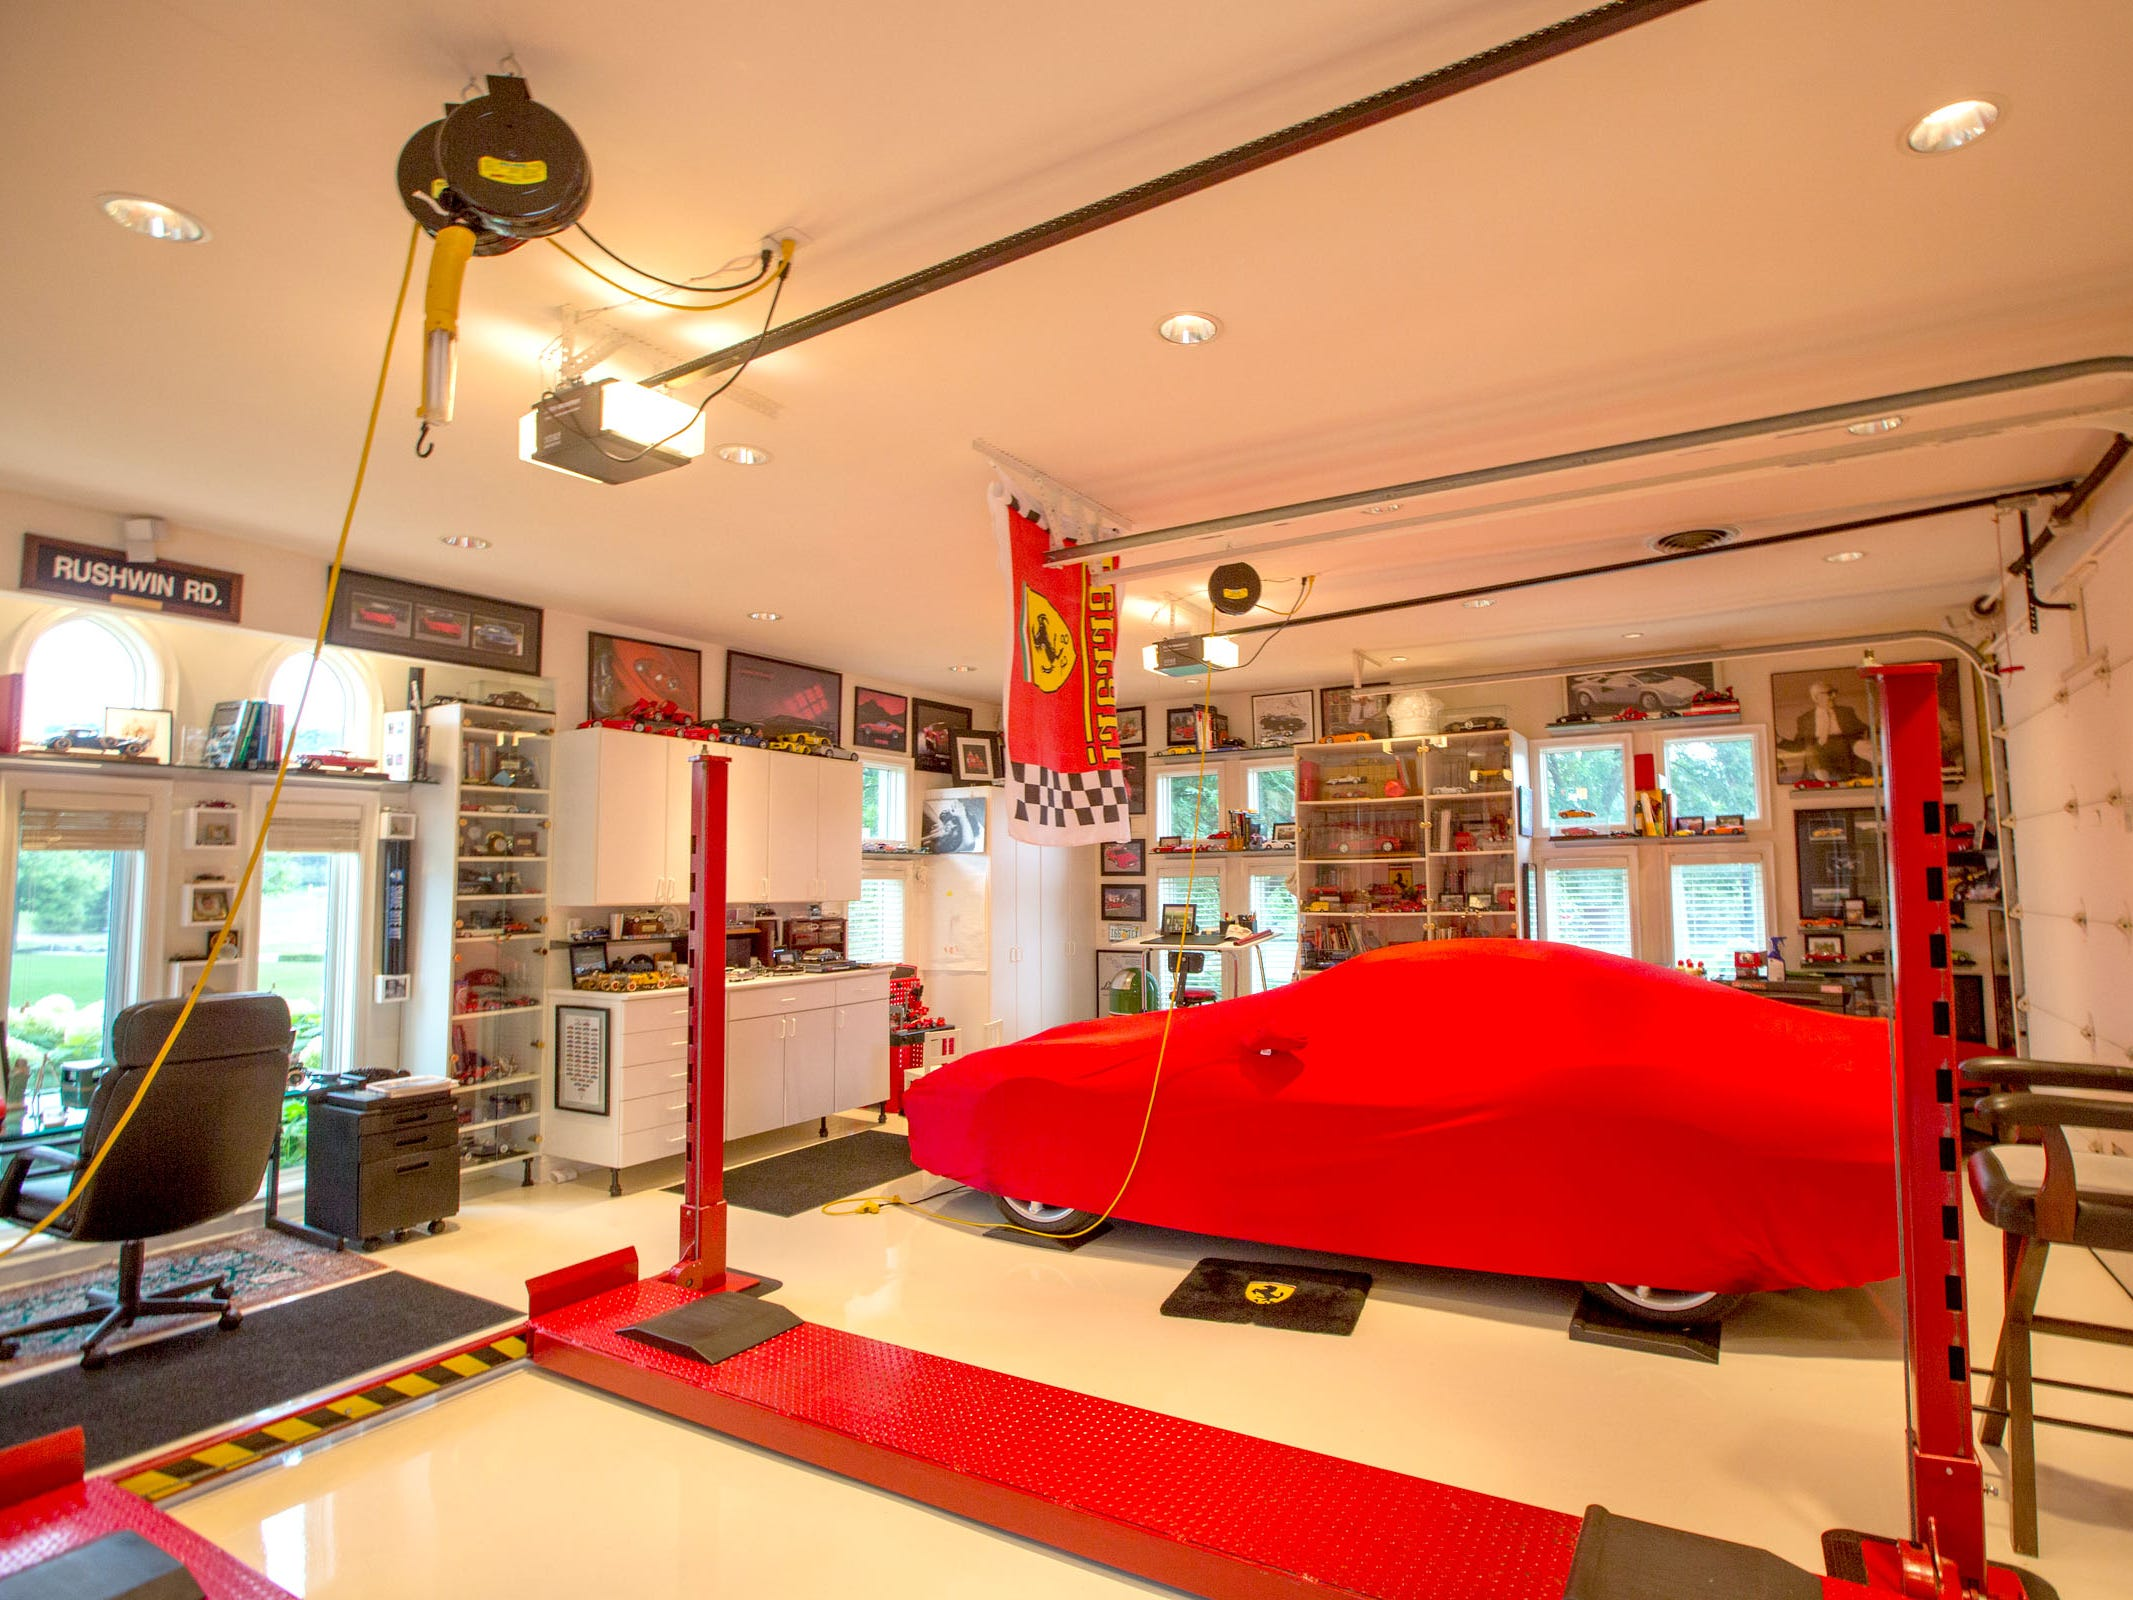 A Ferrari 550 Maranello is under the red cover in this car lover's garage.Two garages, under a porte cochere, with three bays each, also hold a 1995 Viper and a yellow 2005 Ford GT, both of which he helped bring to the market.